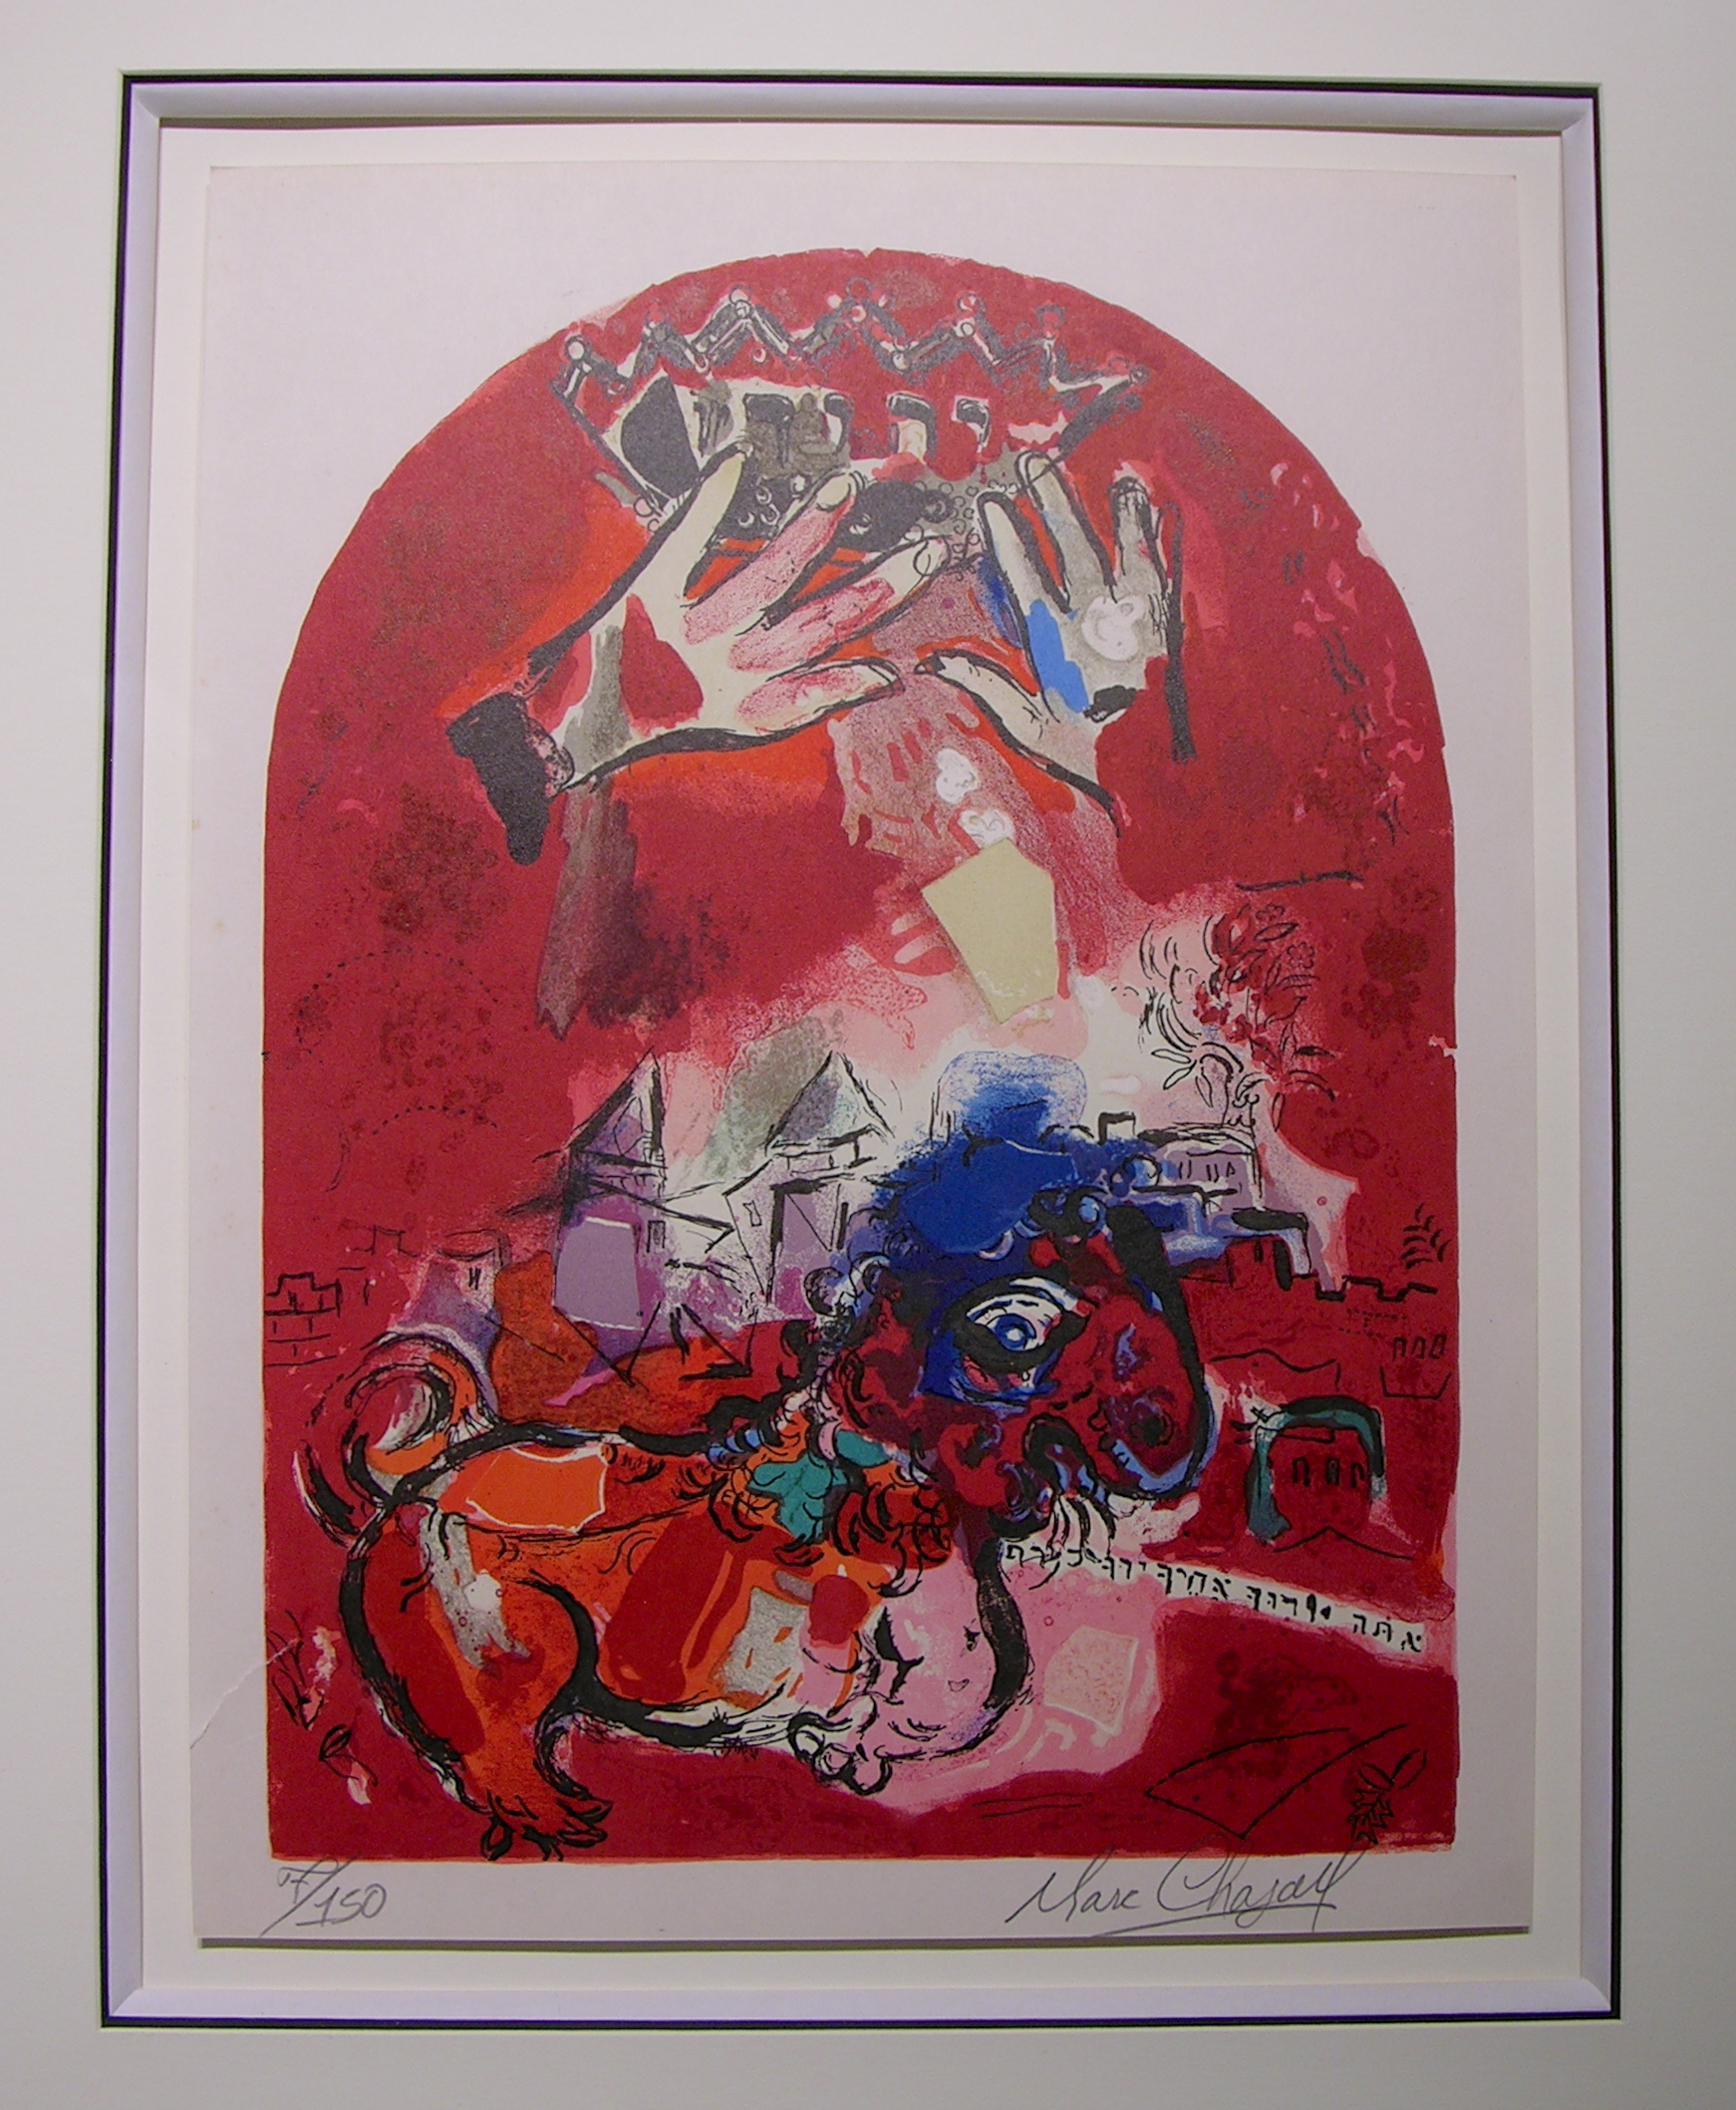 Judah by Marc Chagall